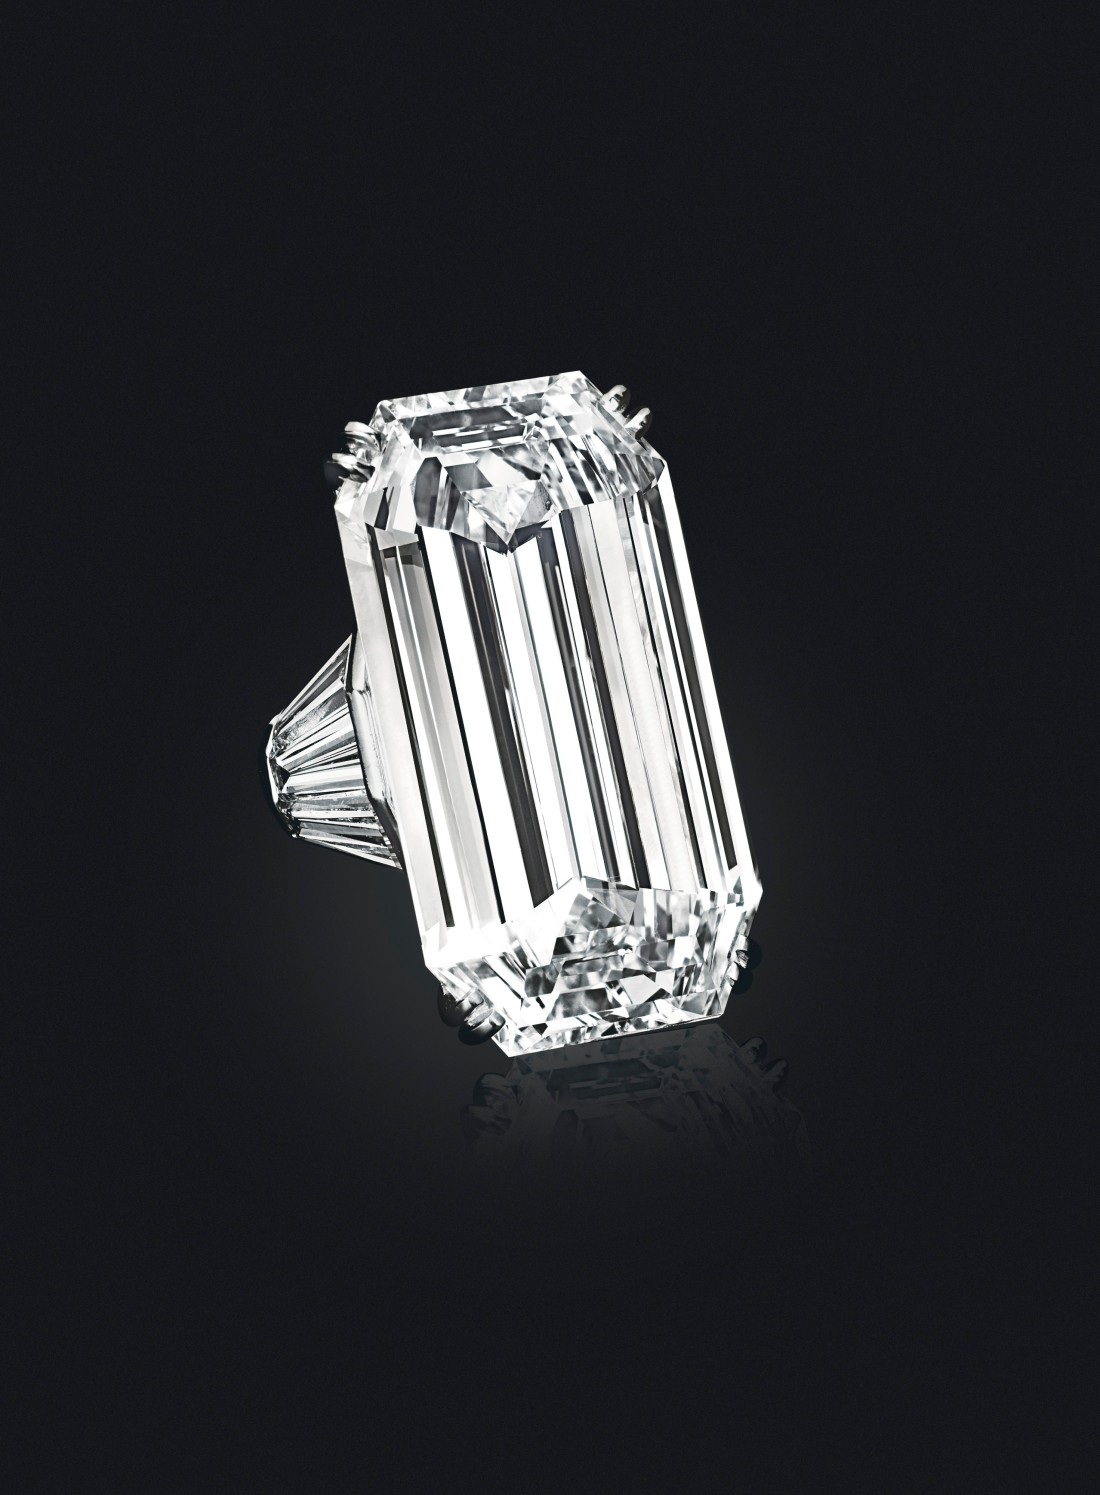 The Mirror of Paradise 52.58-carat Golconda diamond, shown in three-quarter view on a black background. It is in a ring setting.